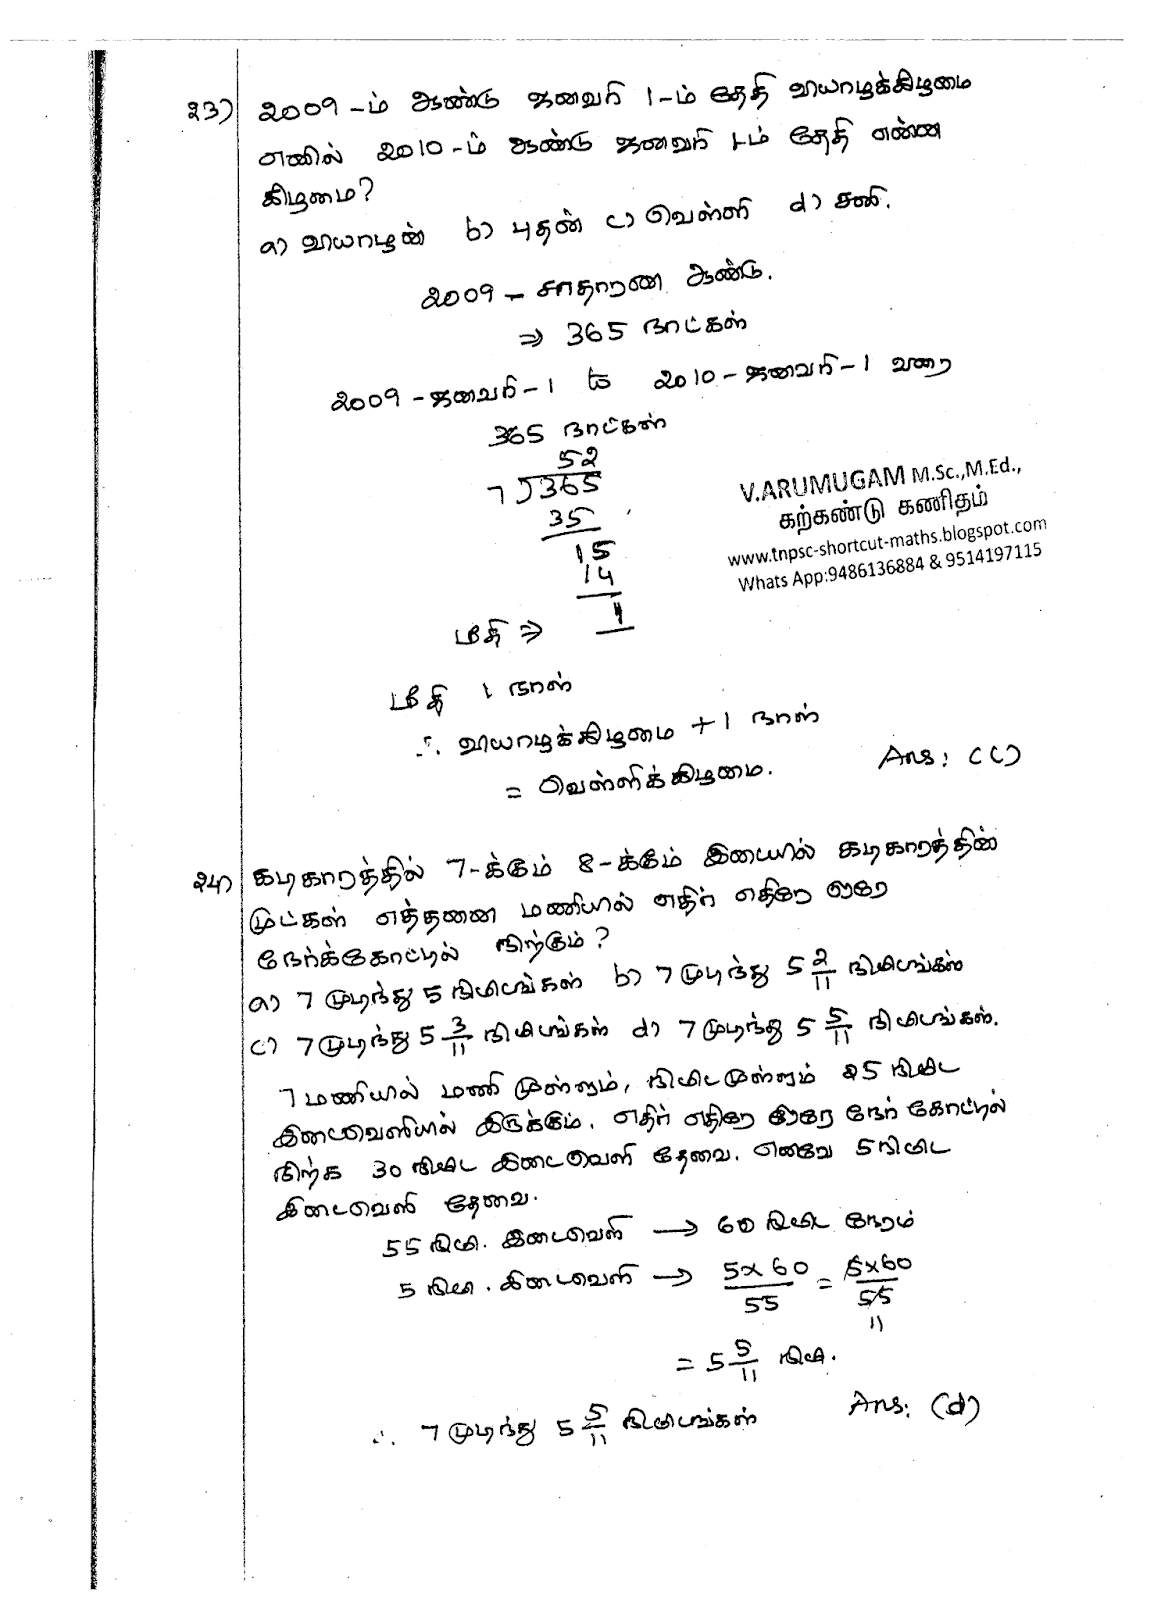 TNPSC – 2019 - Drugs Inspector in Tamil Nadu Medical Service and Junior Analyst in Drugs and Testing Laboratory in Tamil Nadu Medical Subordinate Service, 2017-2019 EXAM - EXAM DATE: 23.06.2019